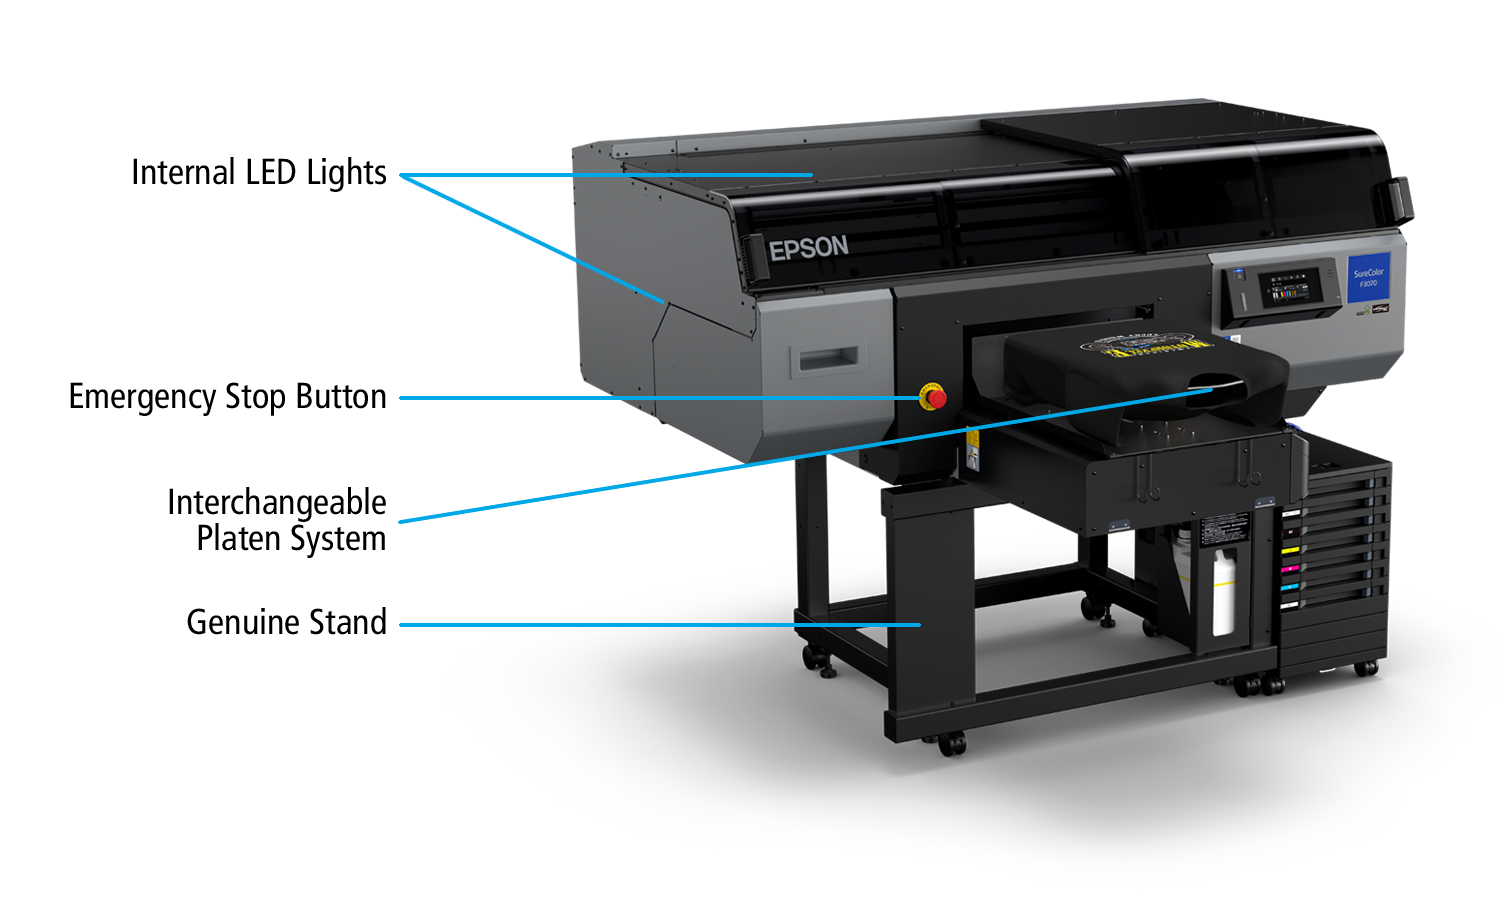 Epson SureColor F3070 Direct to Garment Printer Left Side View with Features